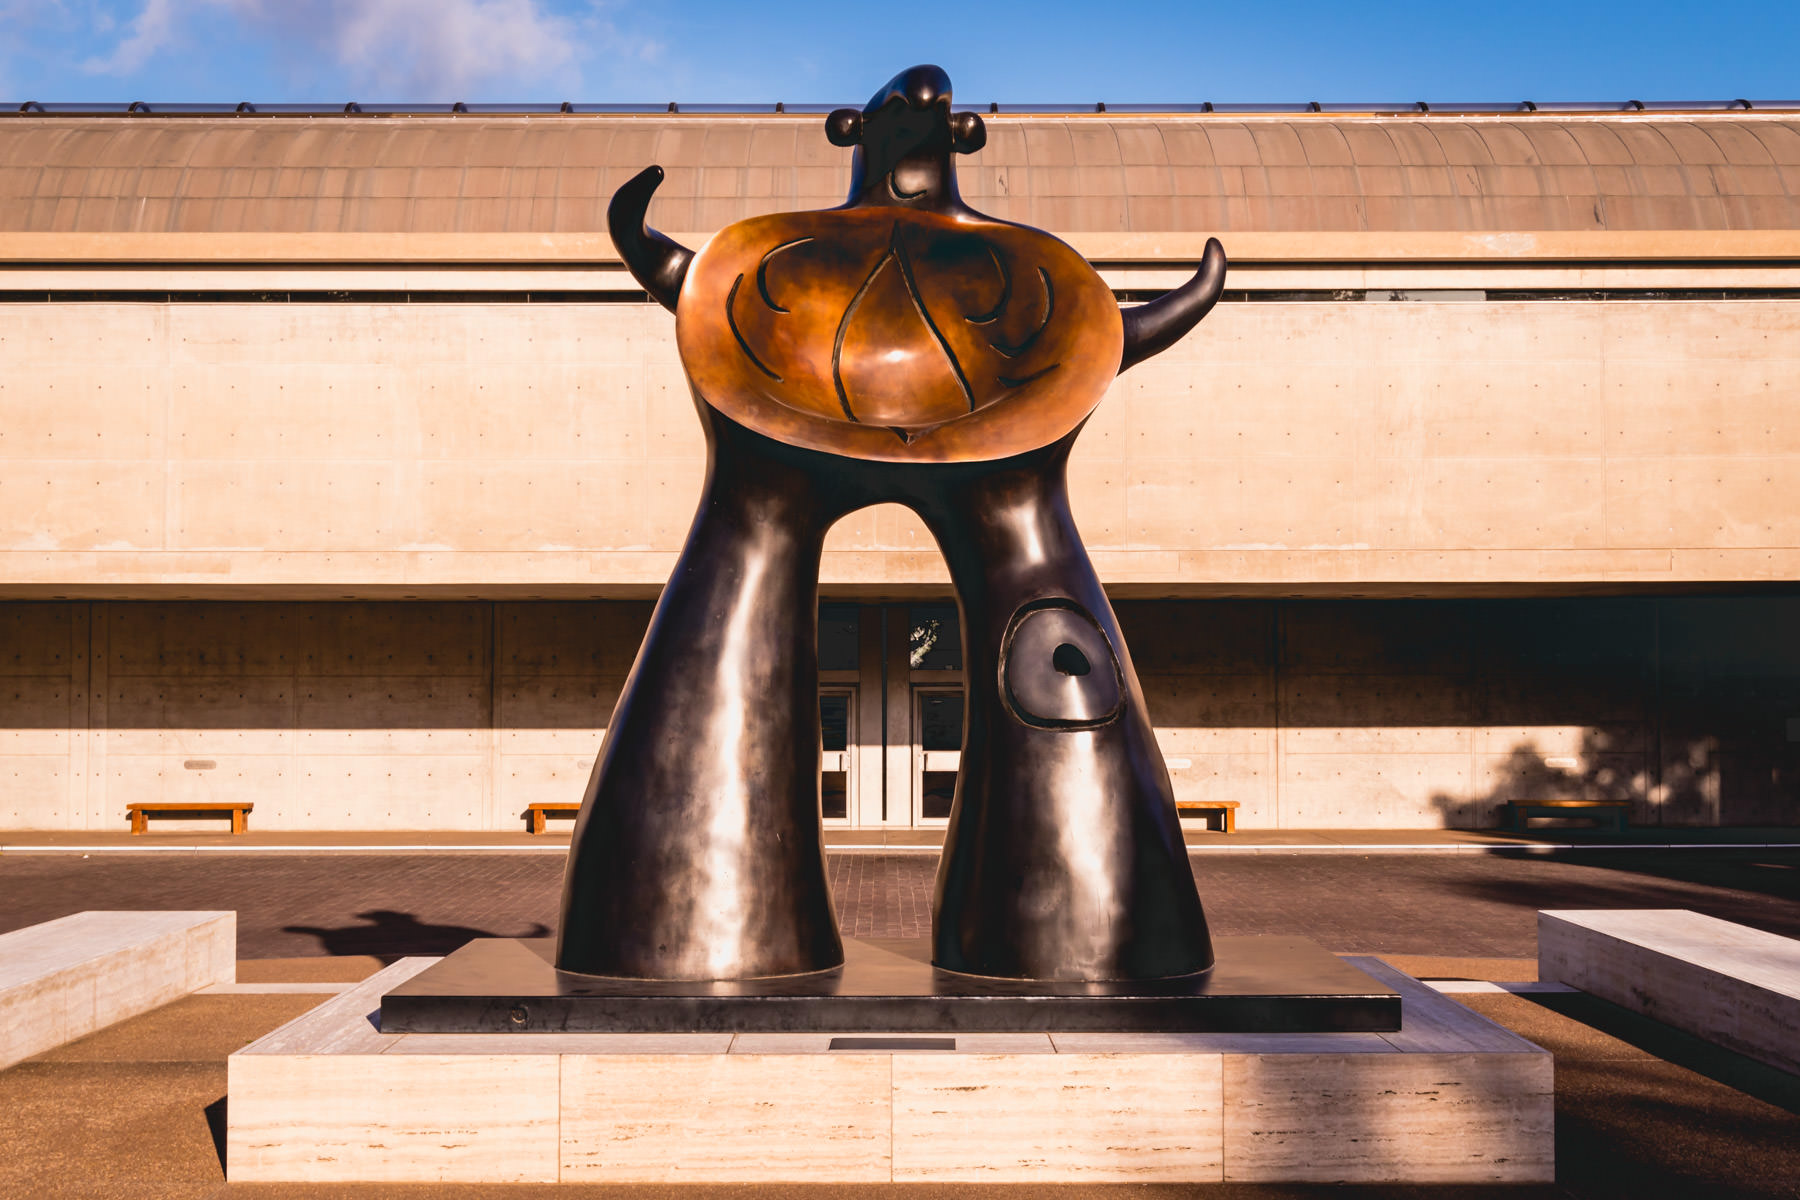 Sculptor Joan Miró's Woman Addressing the Public: Project for a Monument guards the entrance to the Kimbell Art Museum, Fort Worth, Texas.